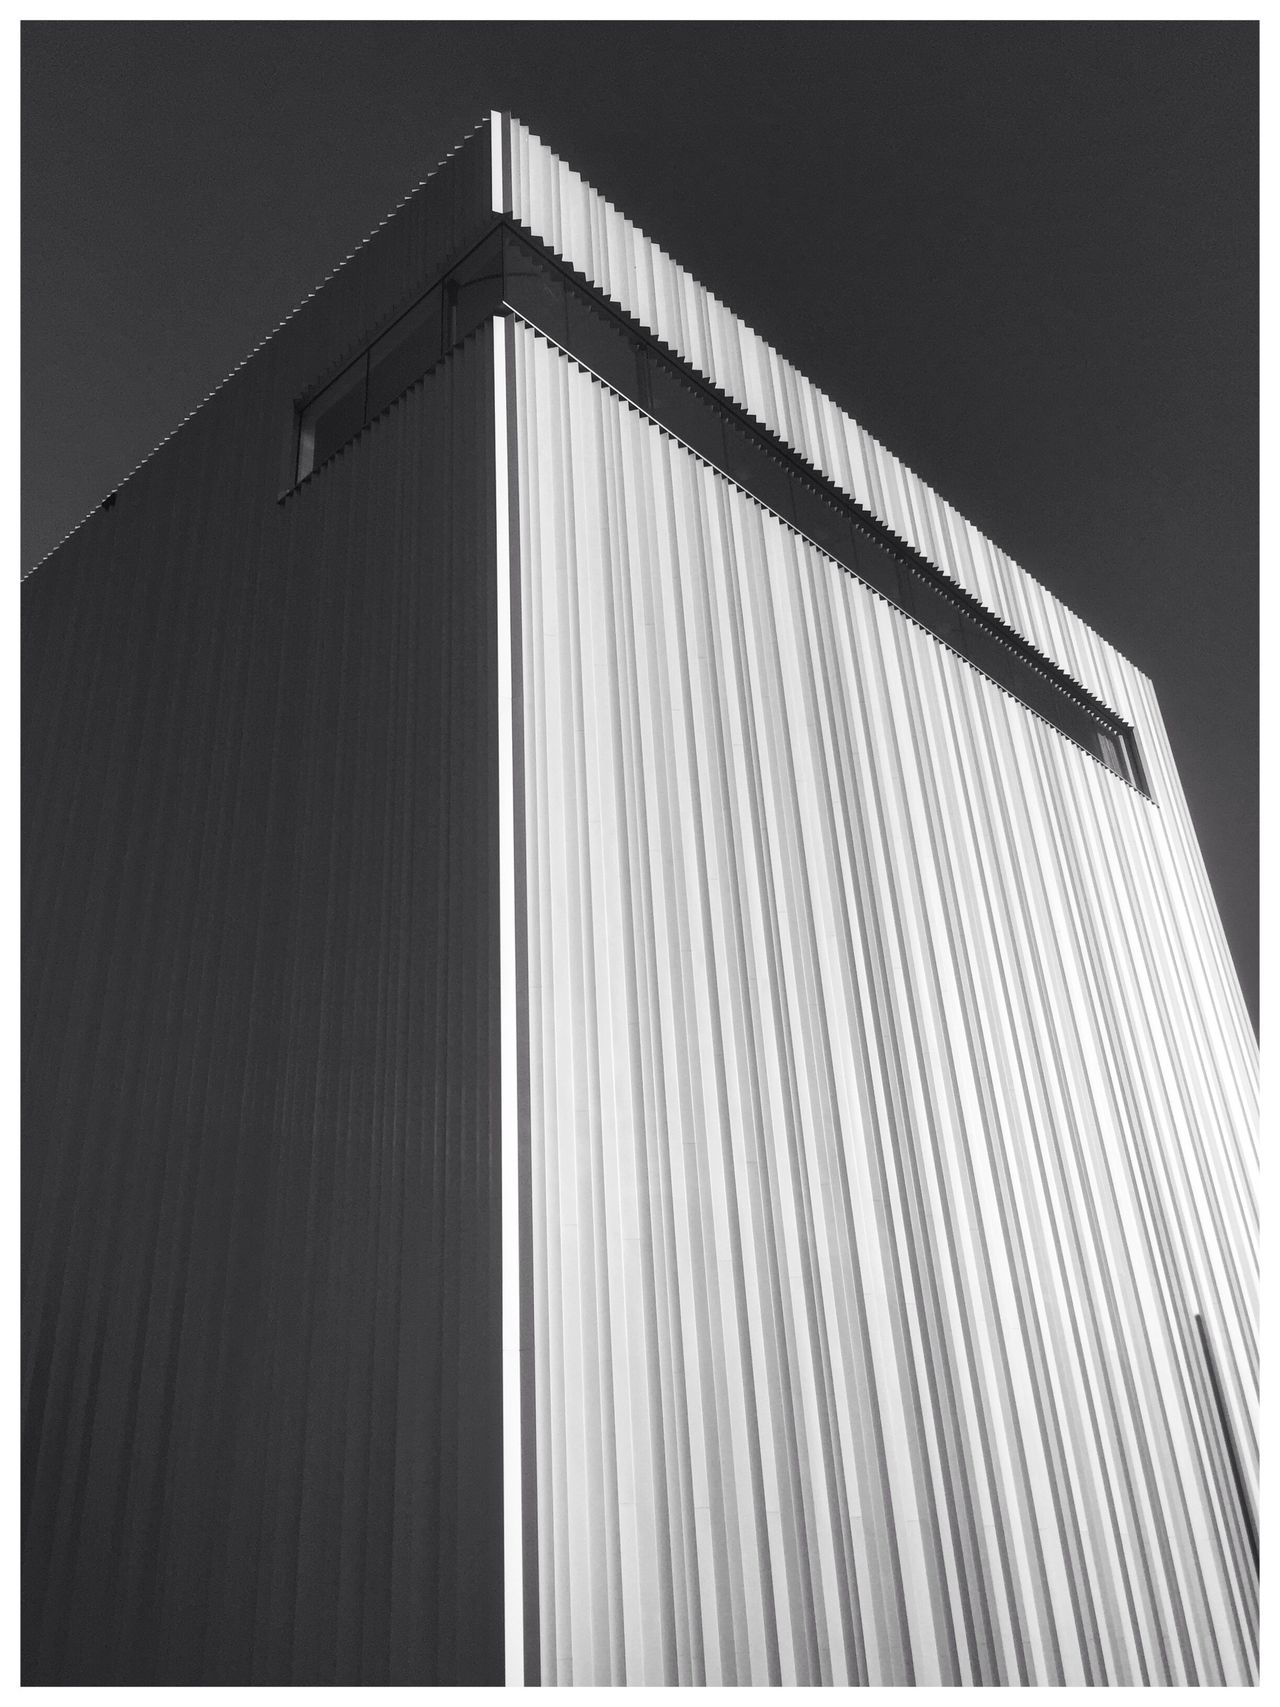 EyeEm Selects Architecture Built Structure Low Angle View Building Exterior No People Outdoors Day Clear Sky Corrugated Iron Sky